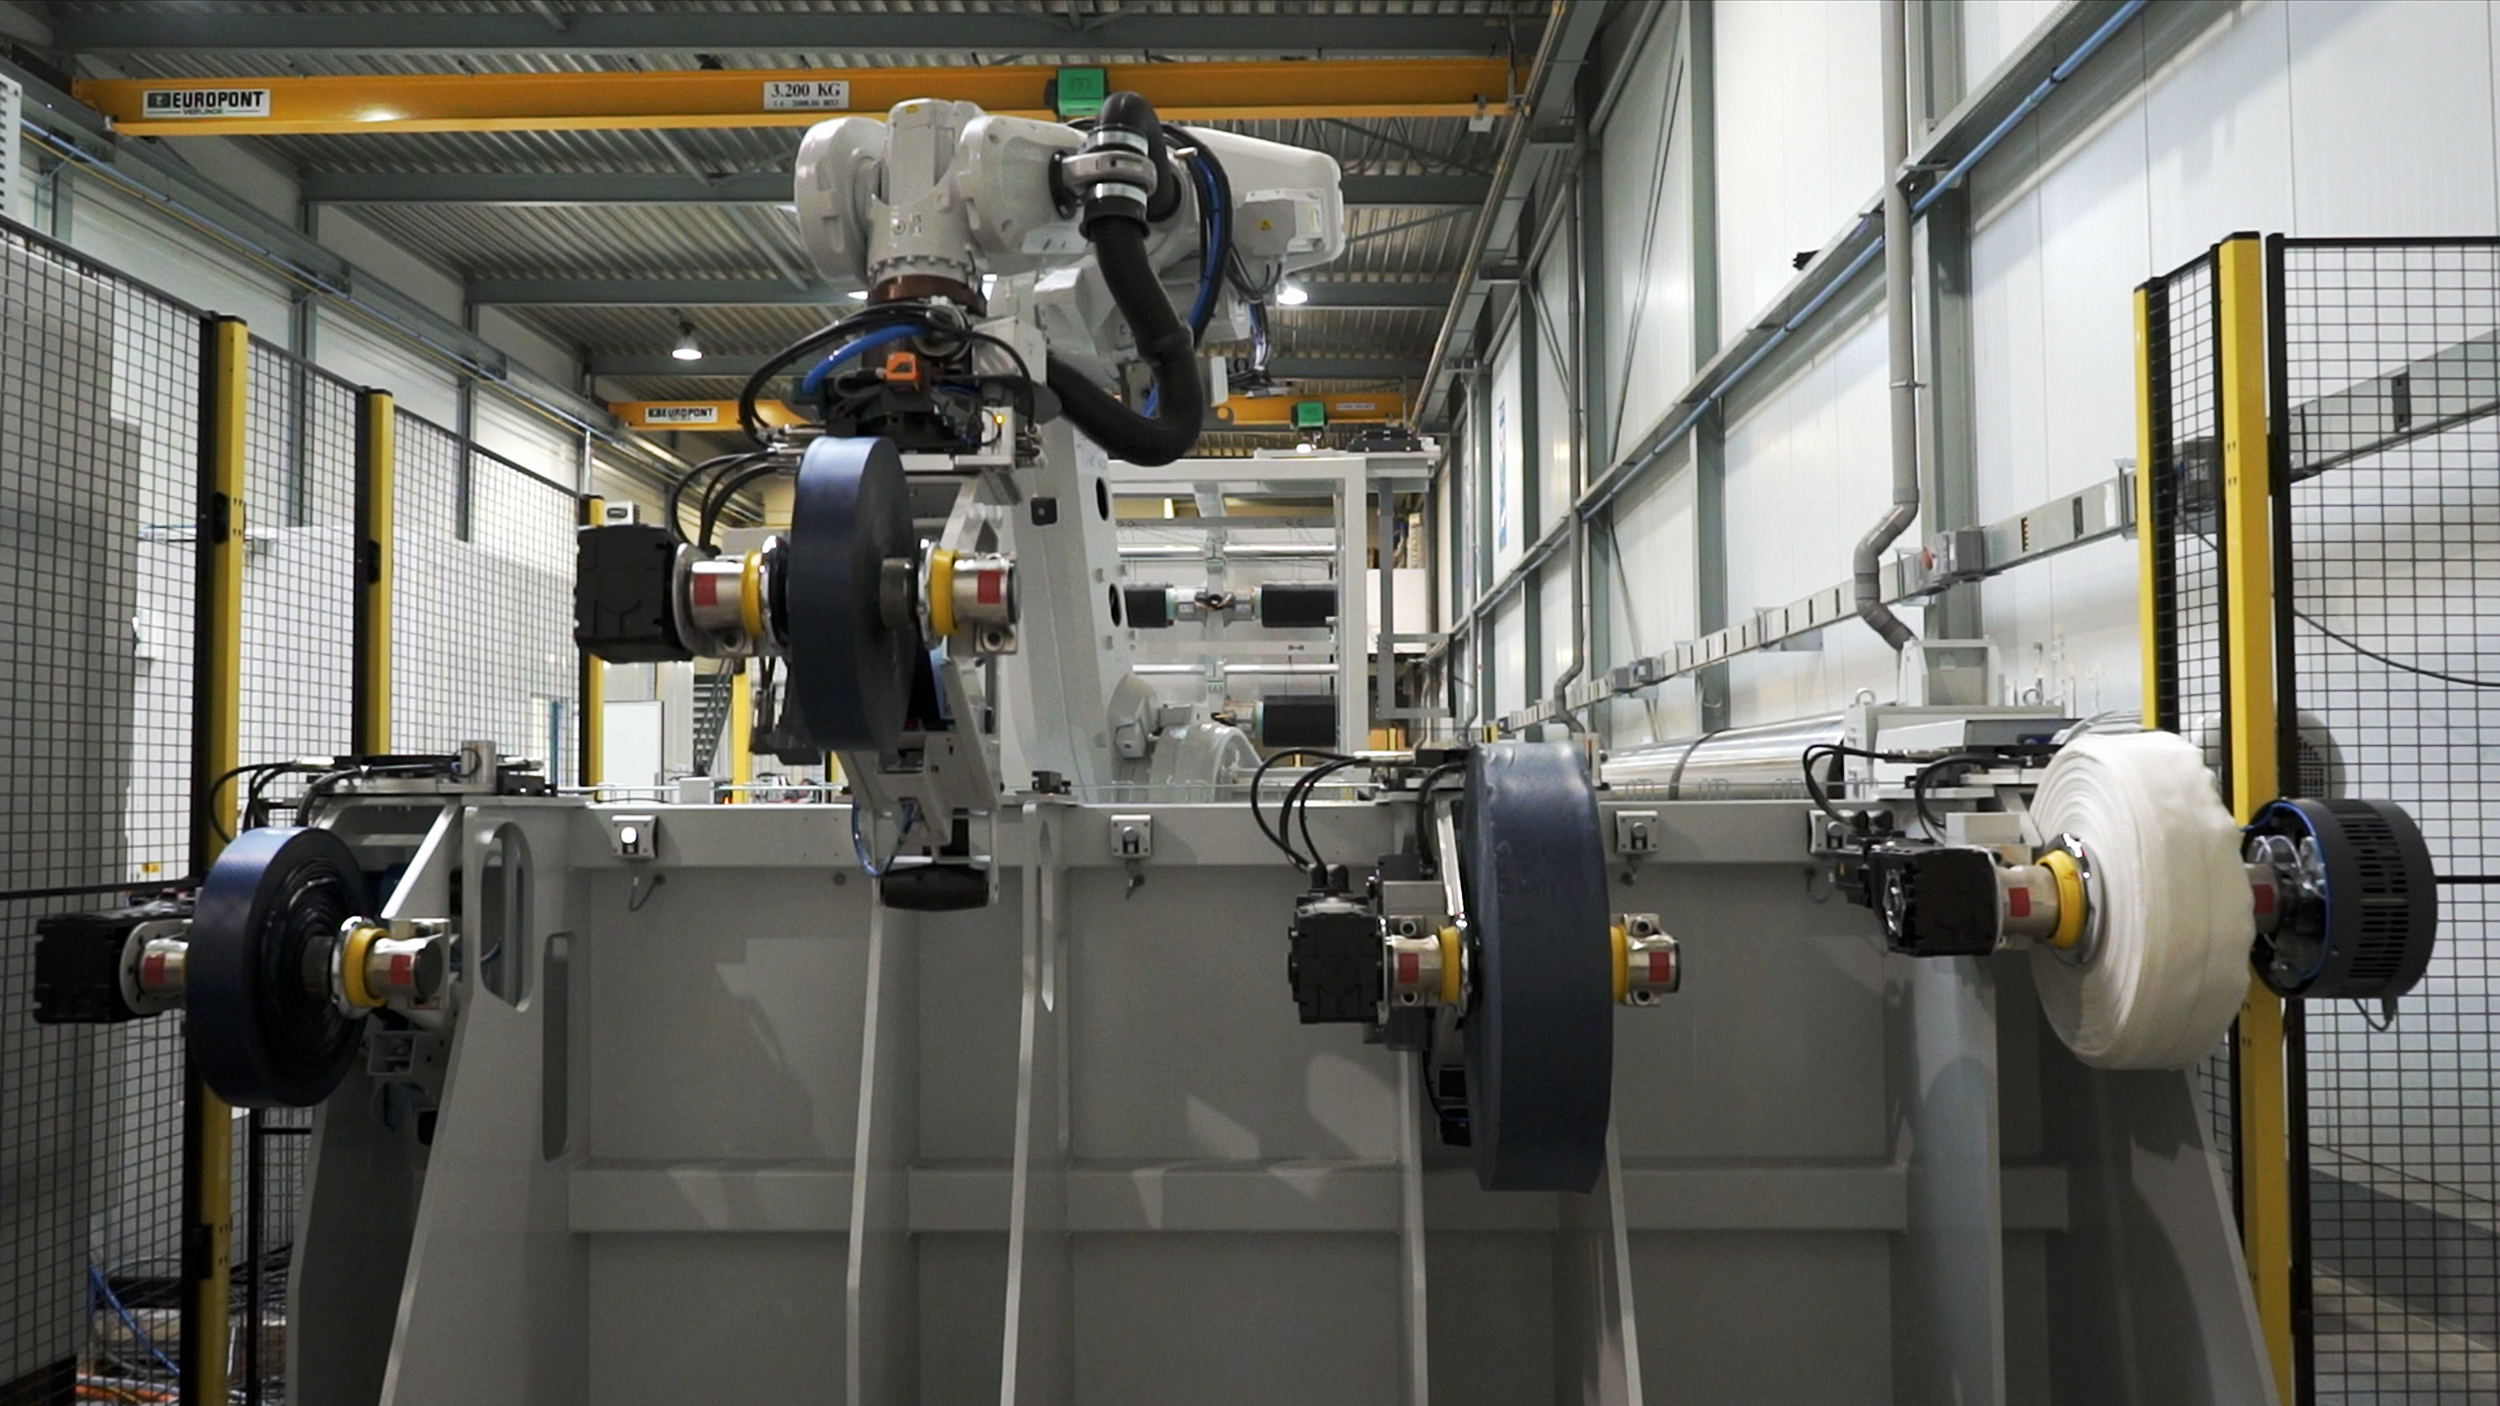 Rubber_robotic_automation_winding_technology.jpg